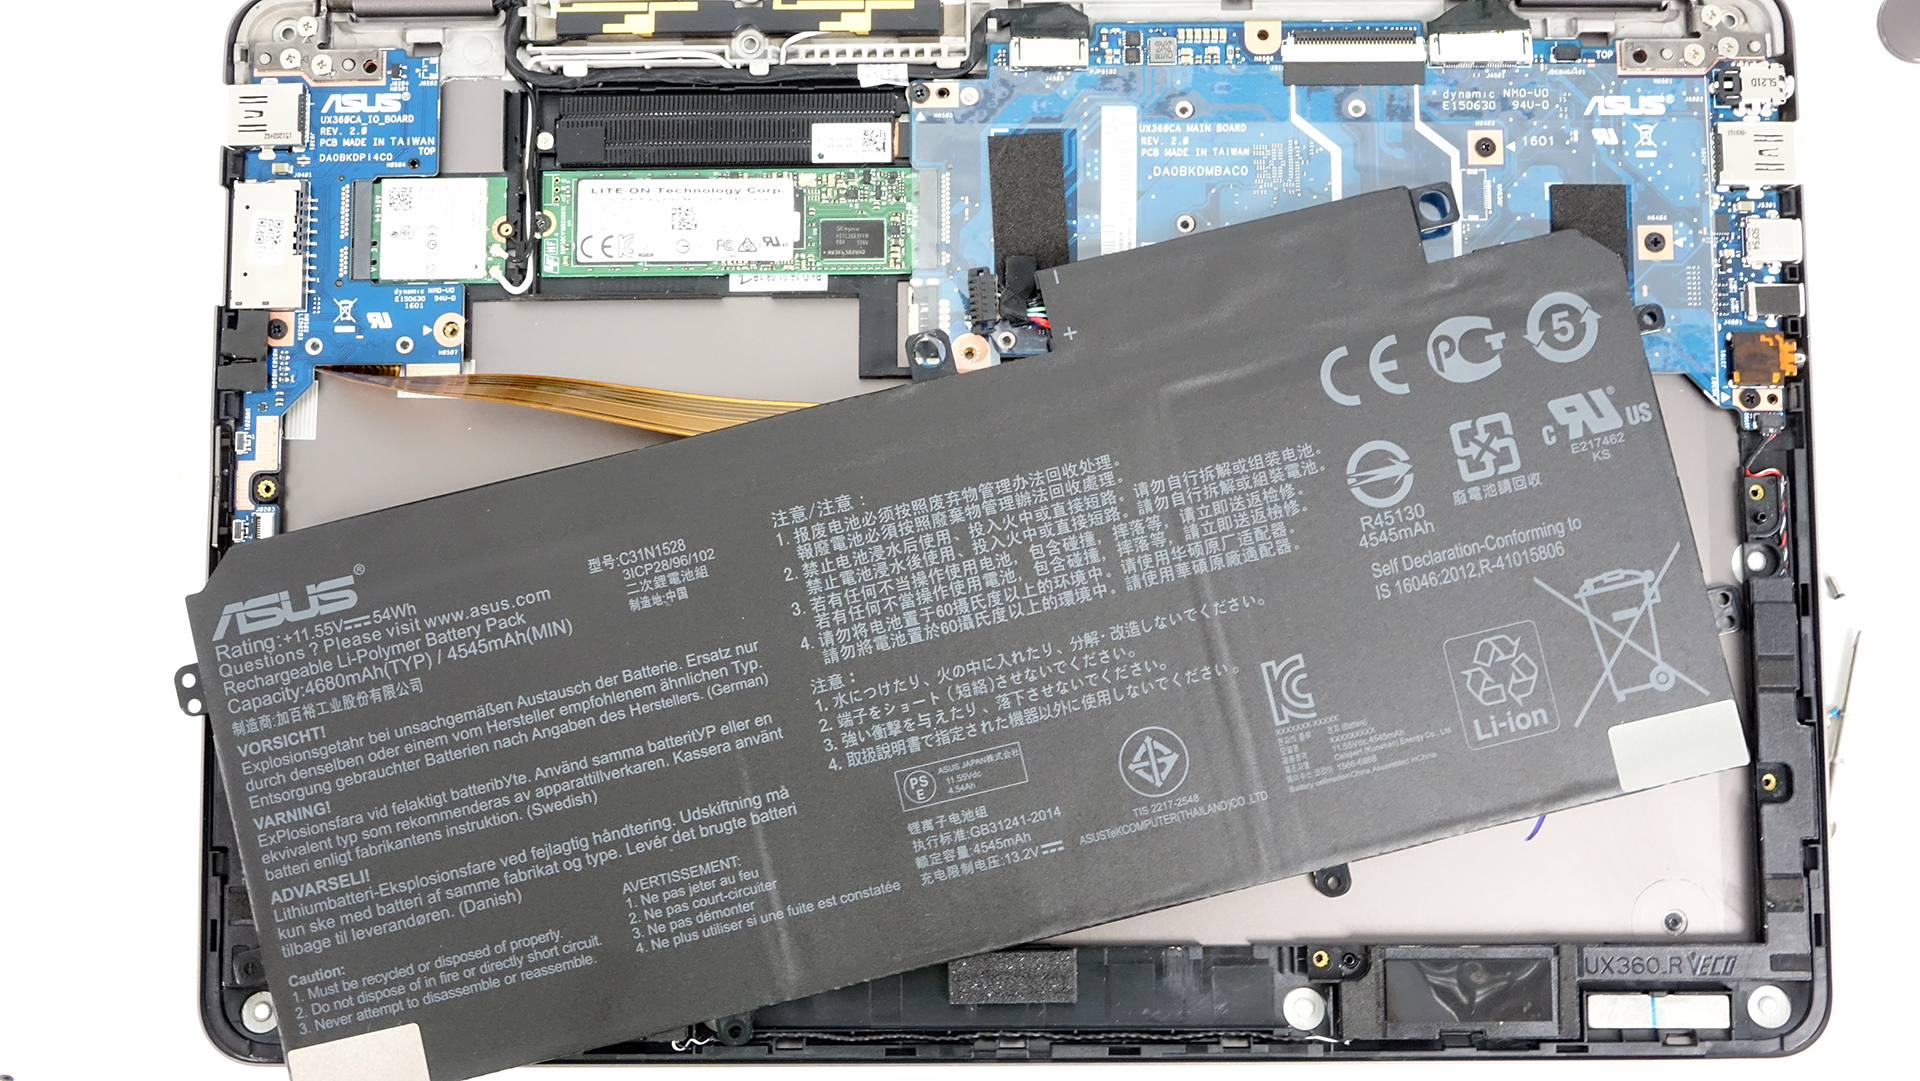 Inside Asus Zenbook Flip Ux360 Disassembly Internal Photos And A Few Pictures Of The Board Internals Dsc09383